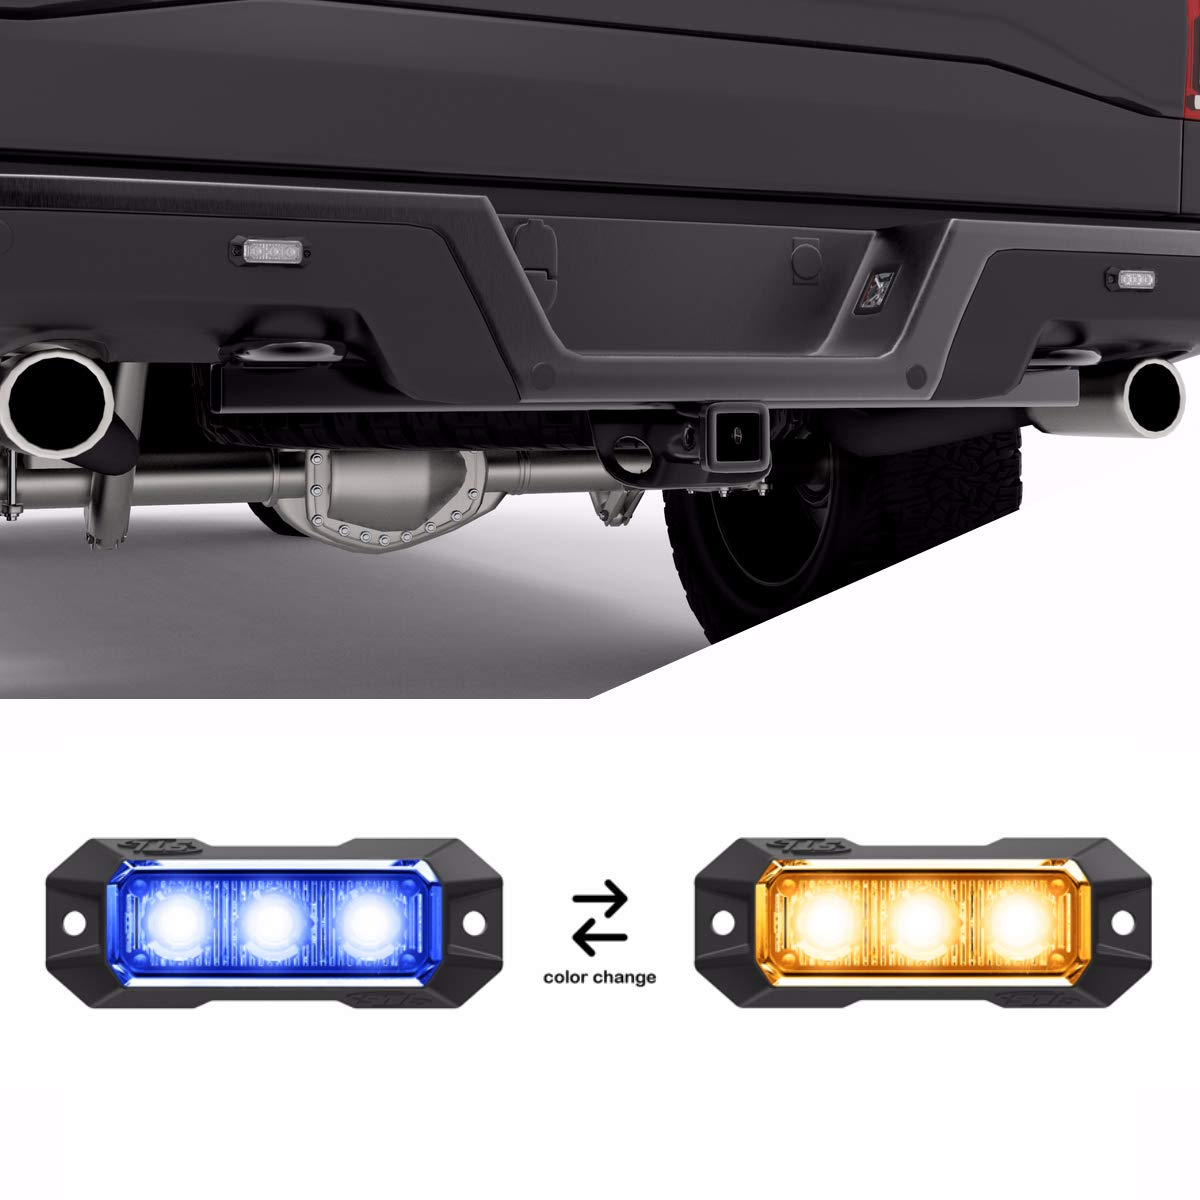 Surface Mount Grille Flashing Hazard Beacon Light Clear//Clear Plows Service Vehicles White//White Emergency Vehicles Construction Trucks SpeedTech Lights Z-3 9W LED Strobe Light for Police Cars